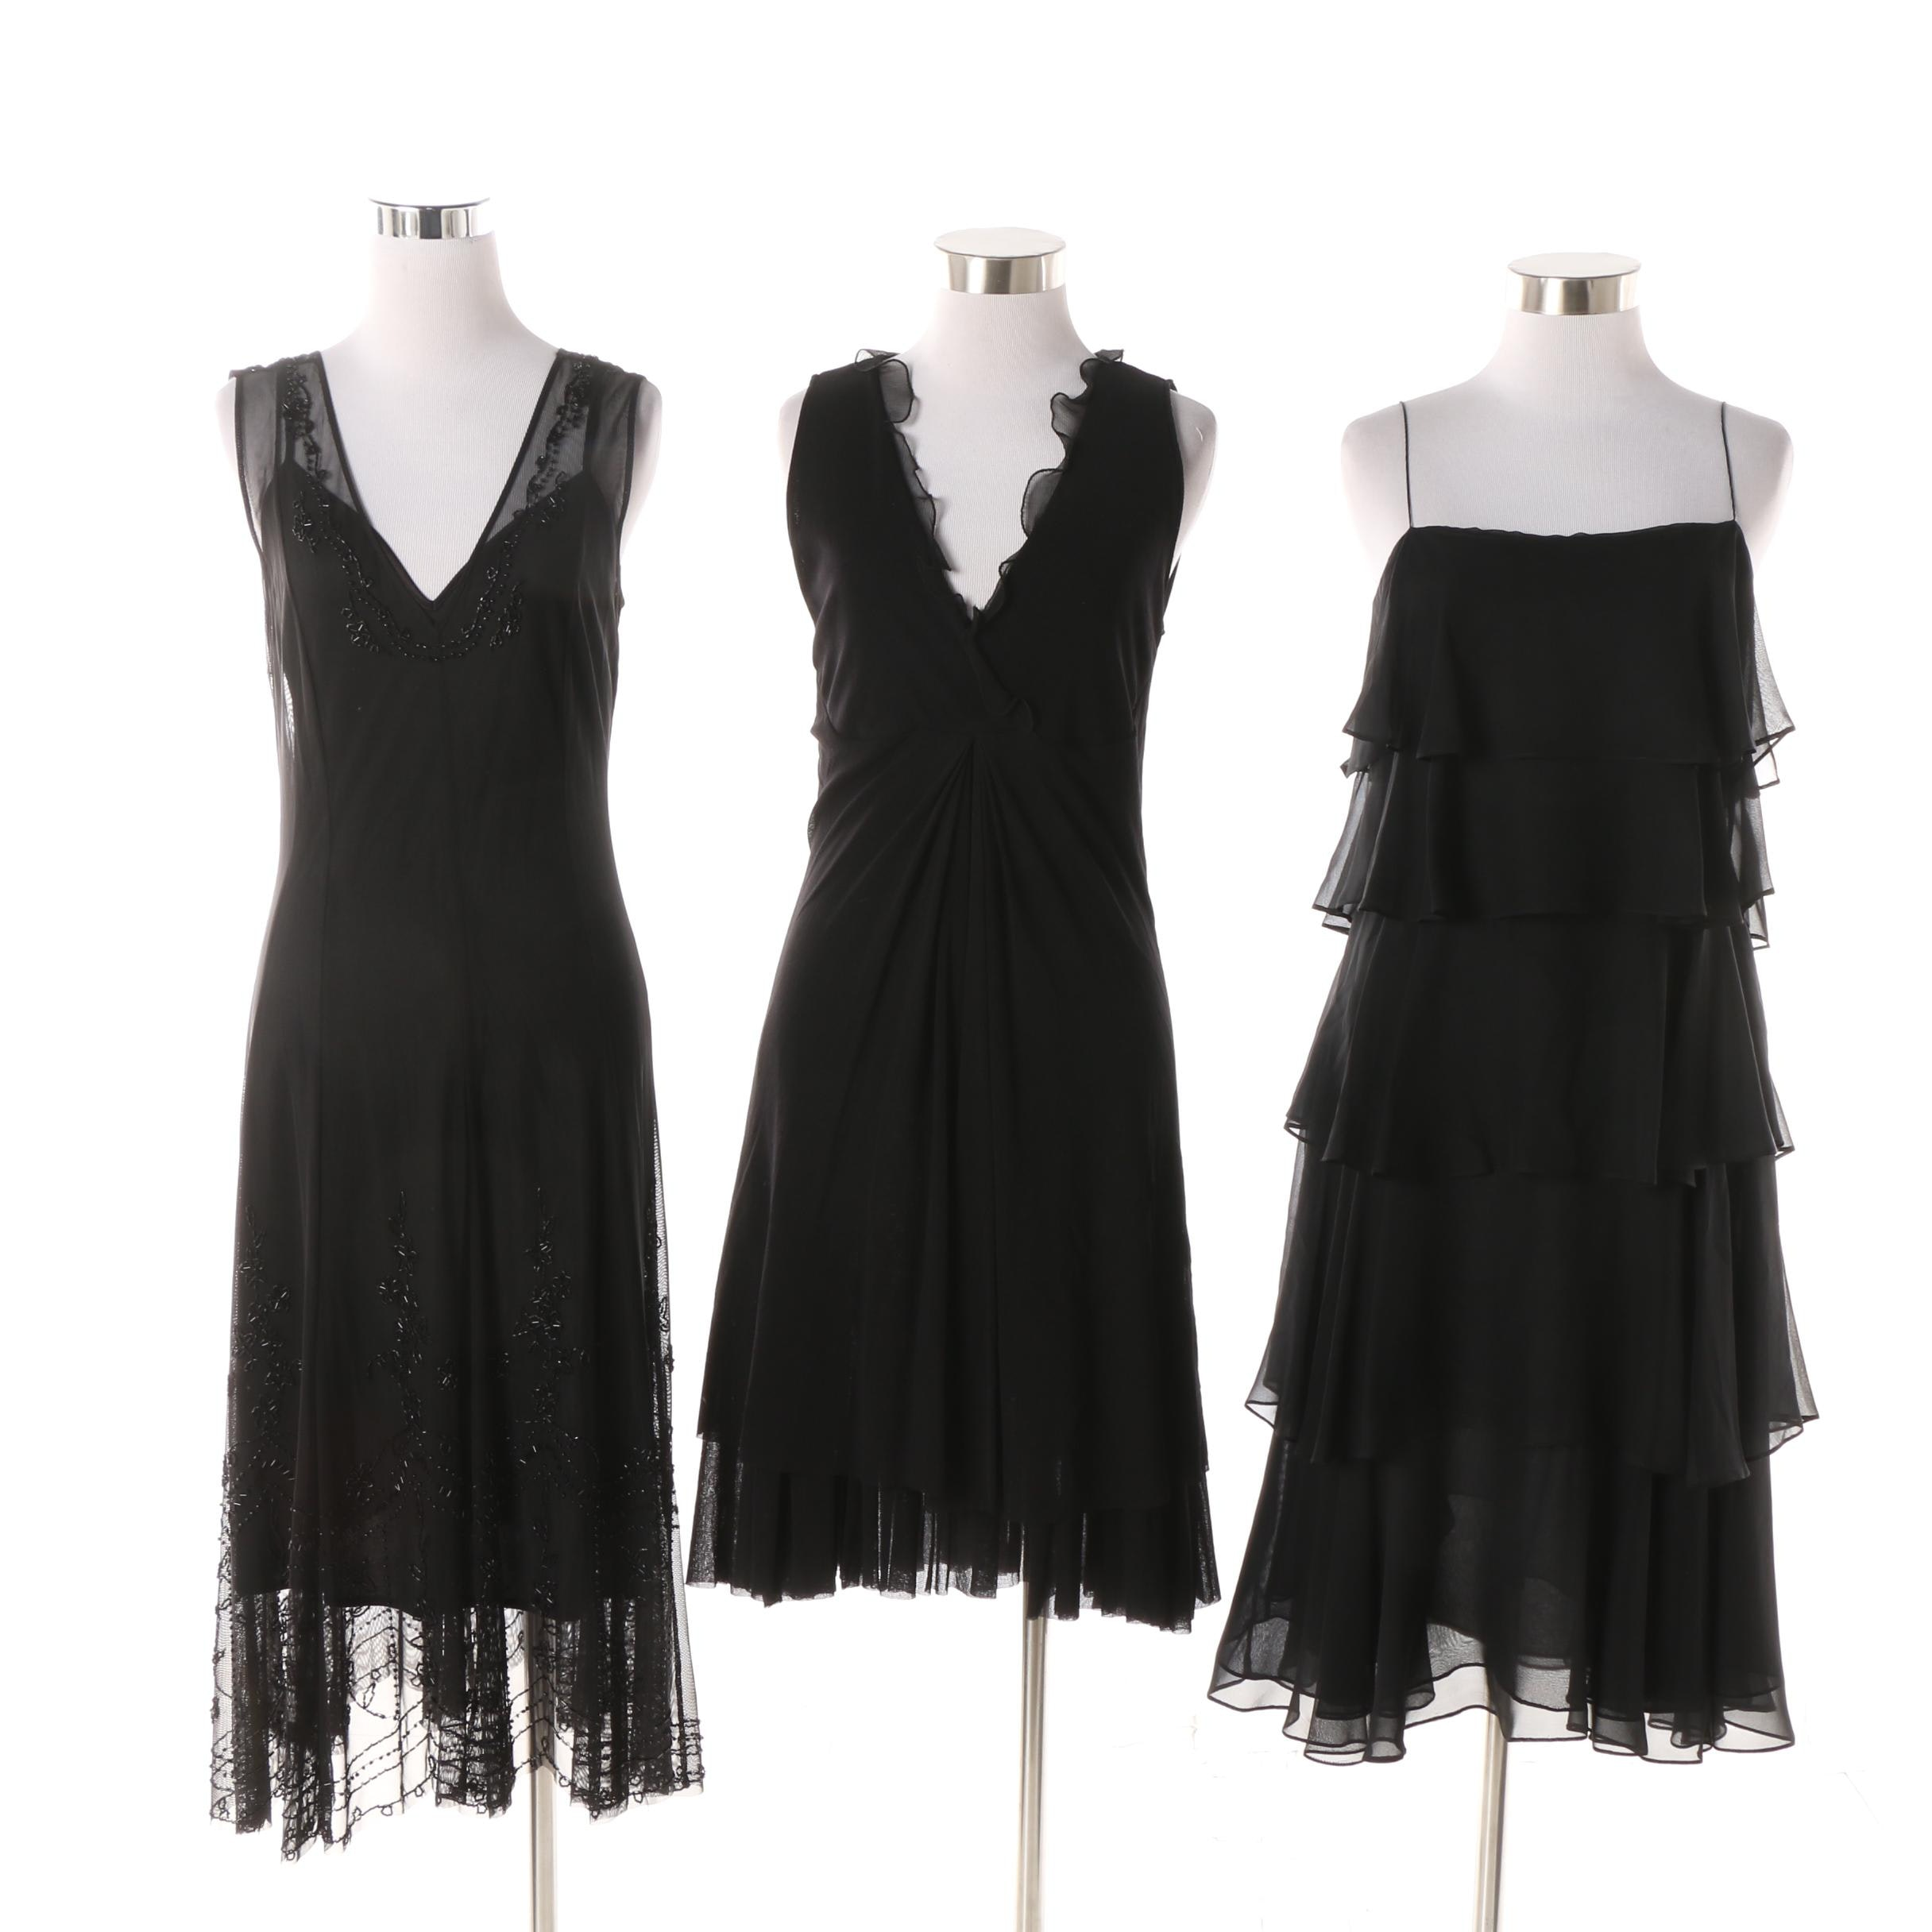 Women's Black Sleeveless Dresses including Saks Fifth Avenue